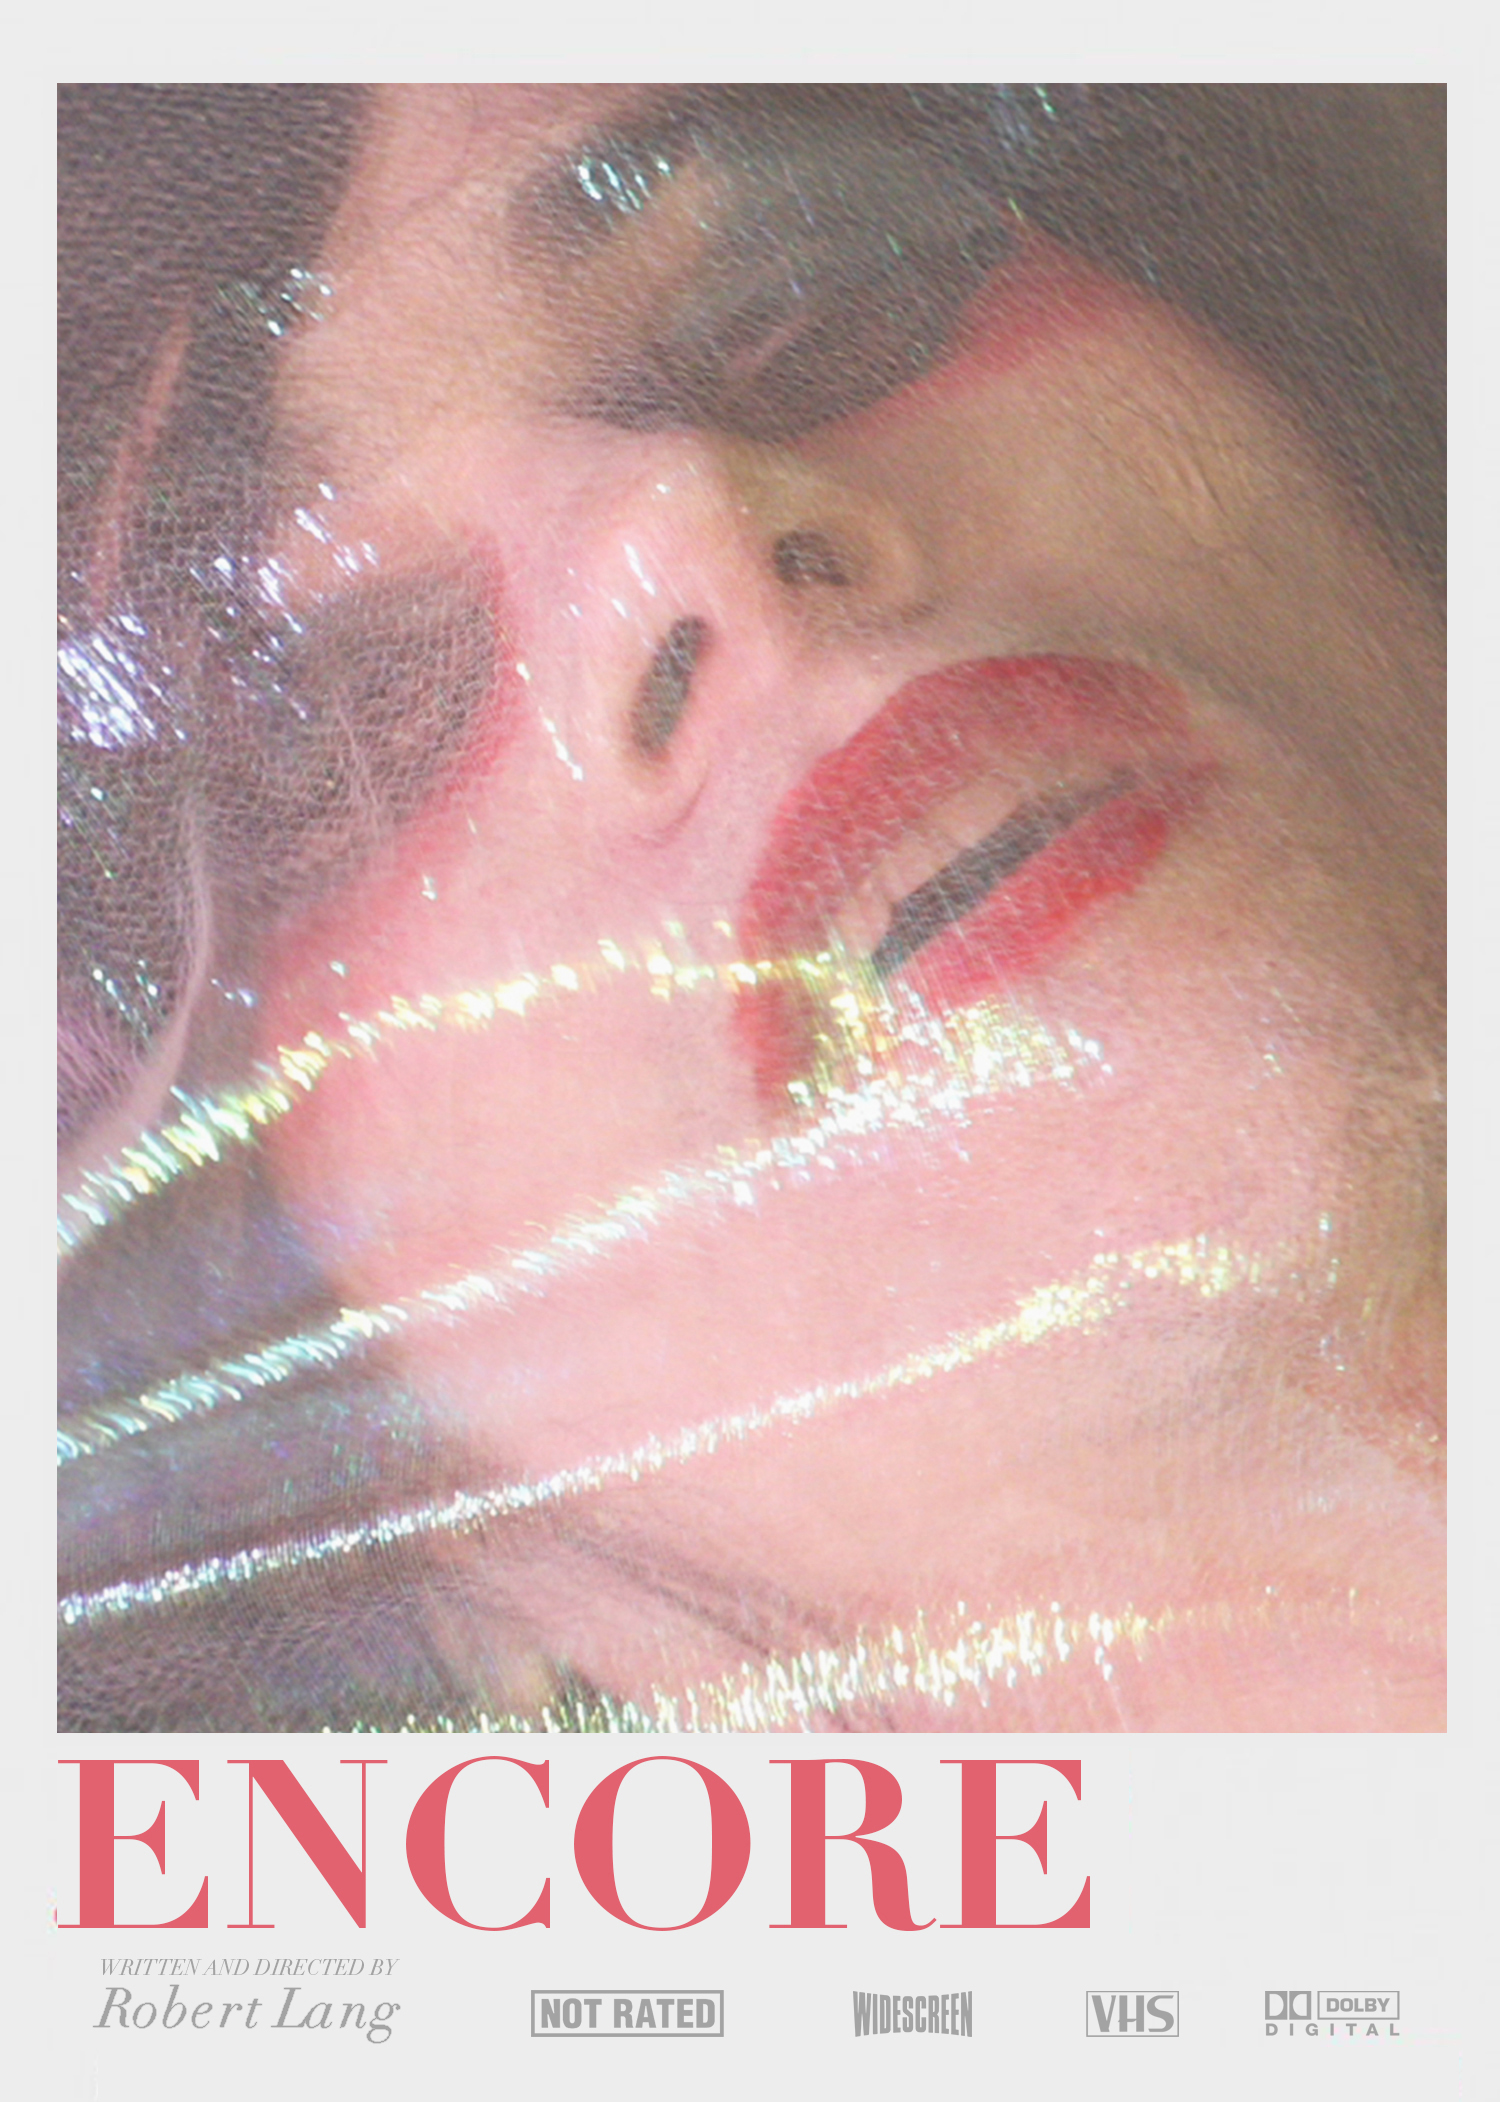 Encore - Short art house film 'Encore' is about a narcissistic character whose obsession with himself leads to question who he really is. The theme deals with egomania and the concept of being conflicted with oneself.